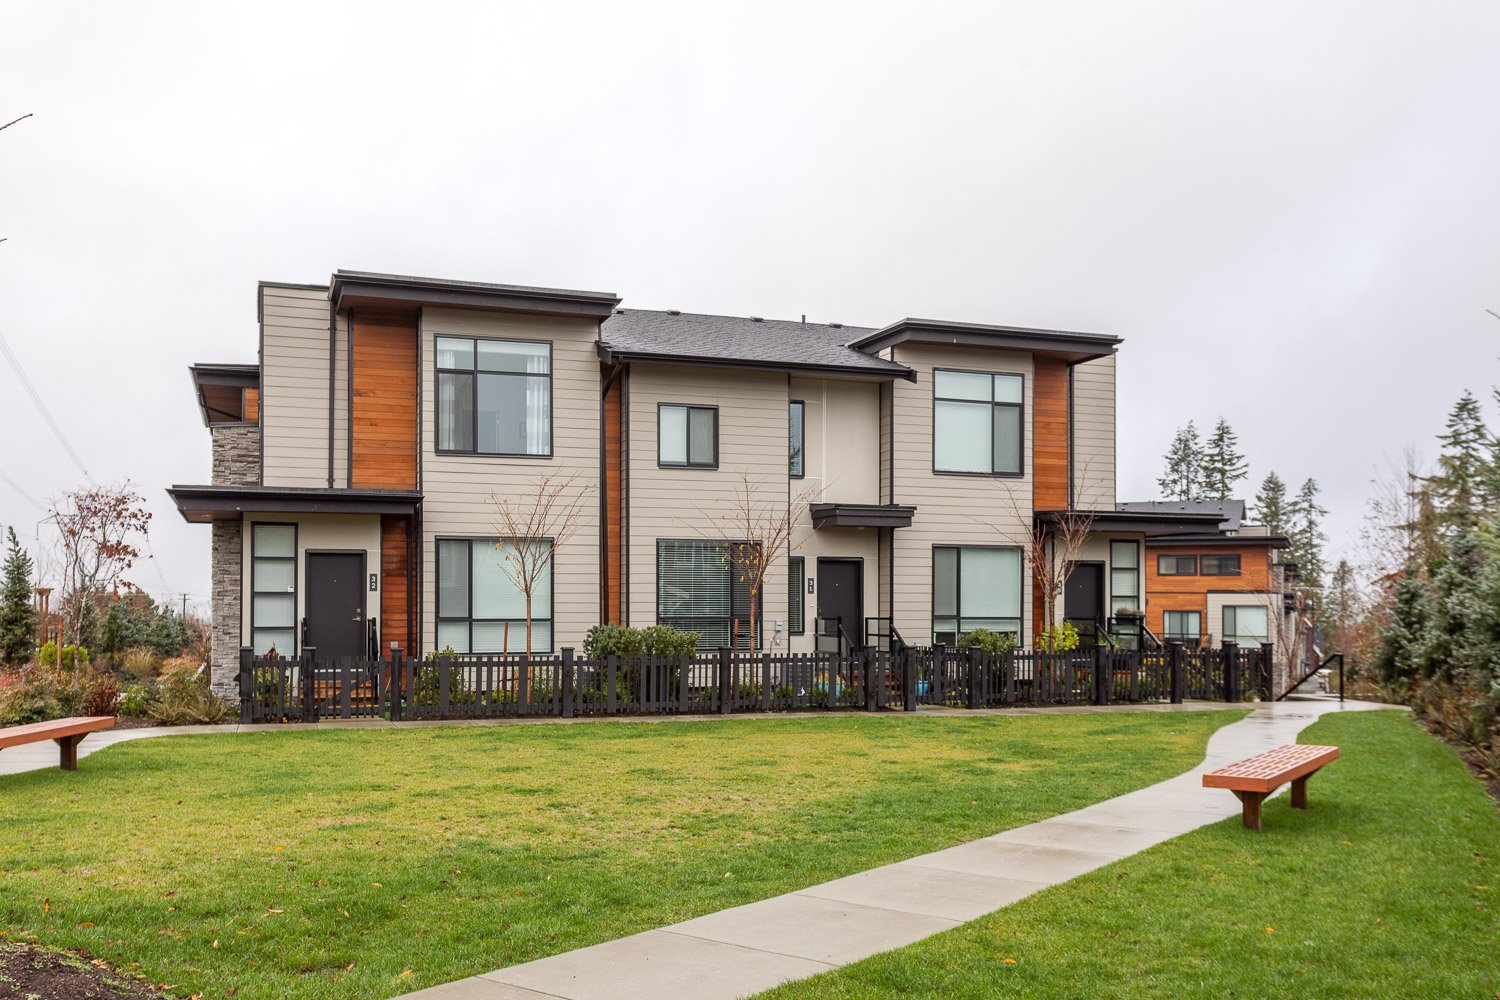 Main Photo: 32 15688 28 Avenue in South Surrey: Grandview Surrey Townhouse for sale (South Surrey White Rock)  : MLS®# R2235944